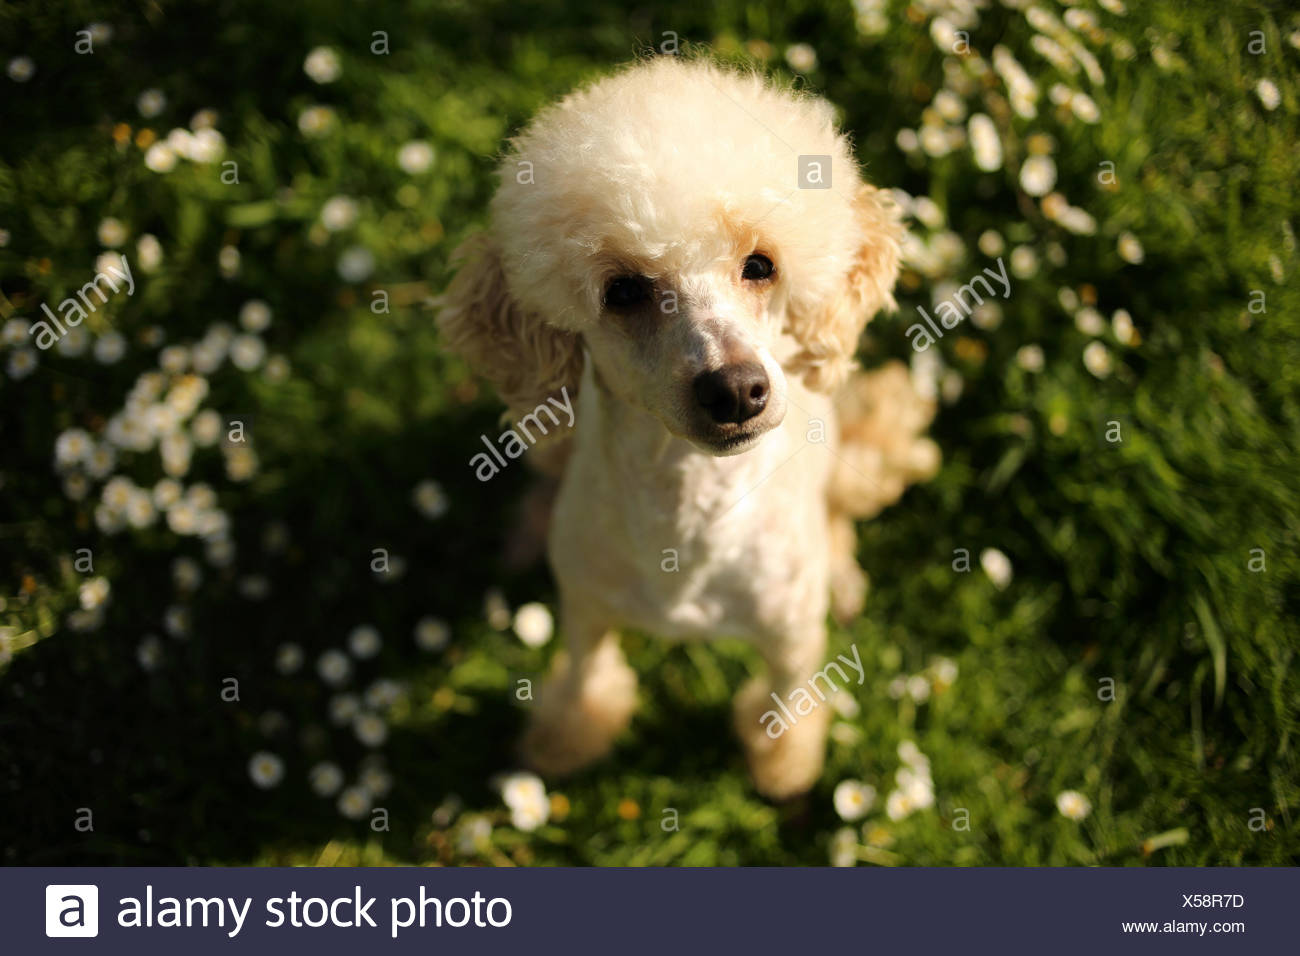 Portrait of a poodle dog sitting on grass - Stock Image